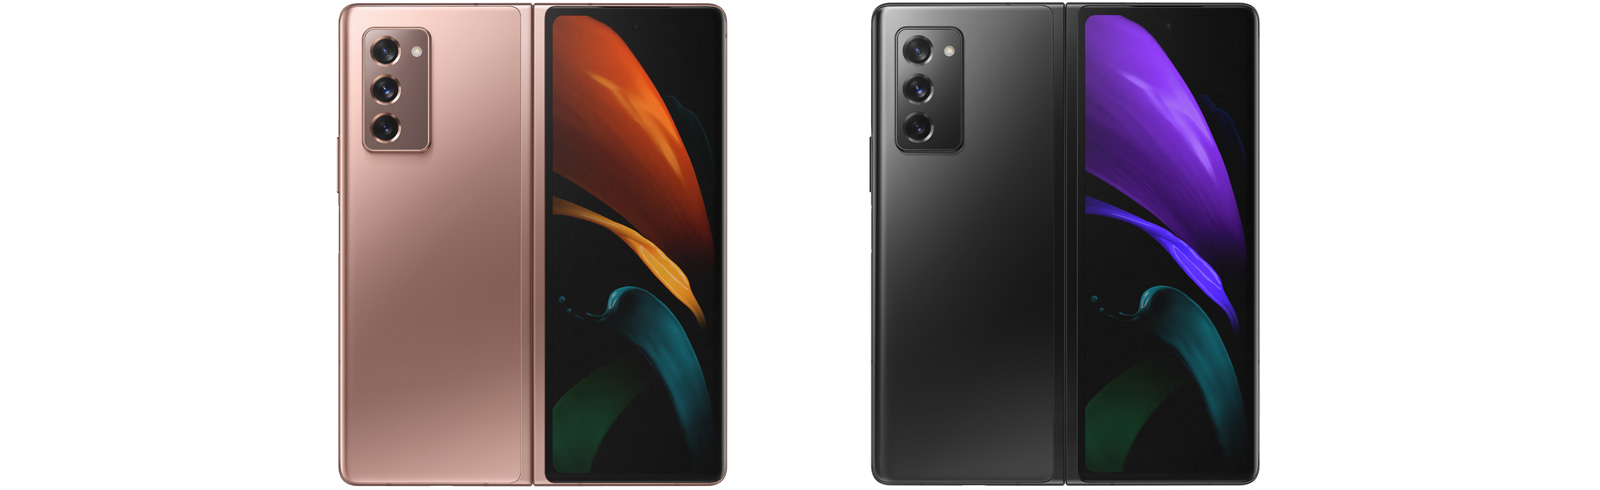 The Samsung Galaxy Z Fold2 is launched - specifications and prices